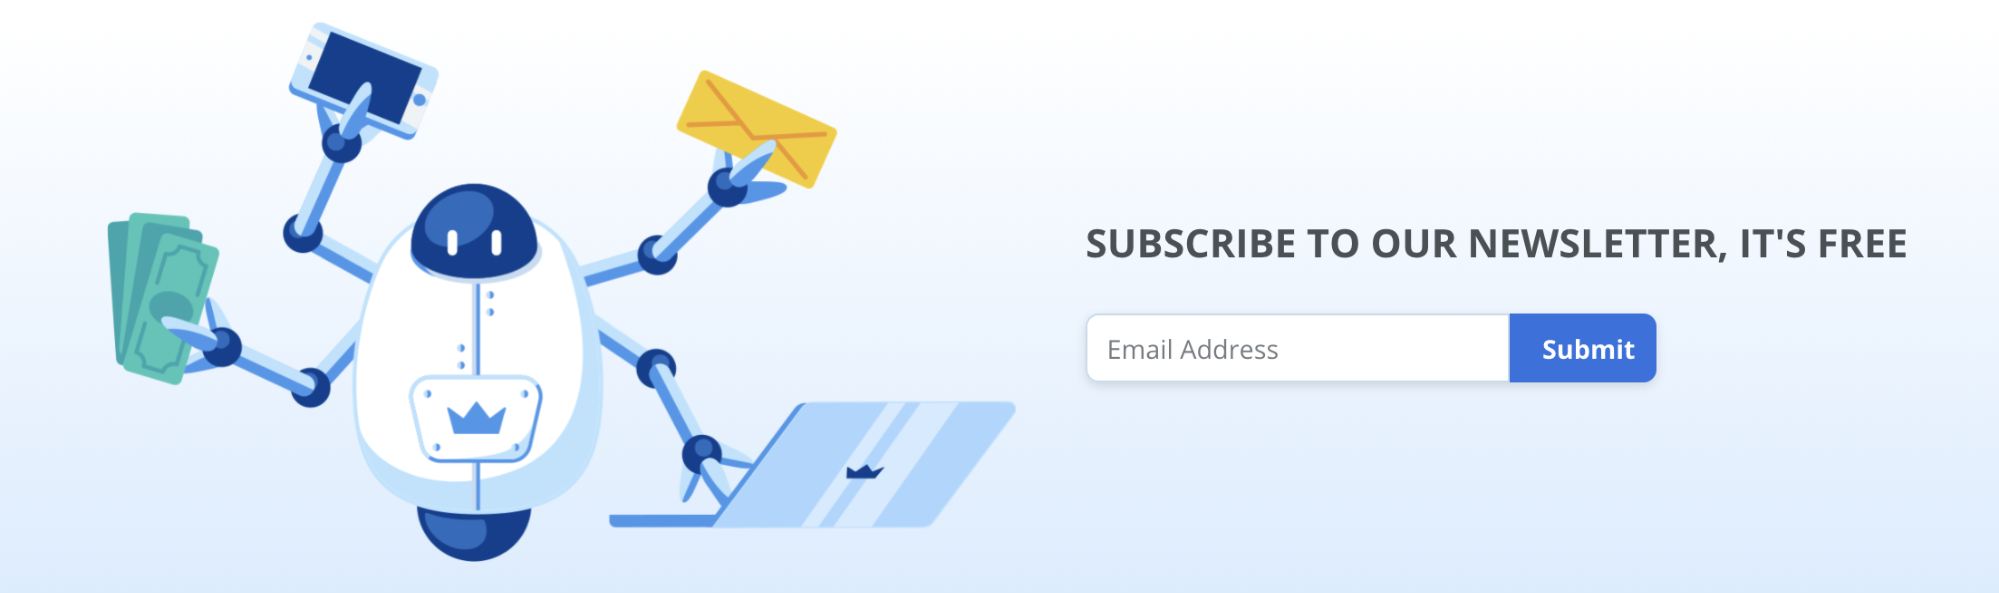 Screenshot showing the subscribe button on Sumo